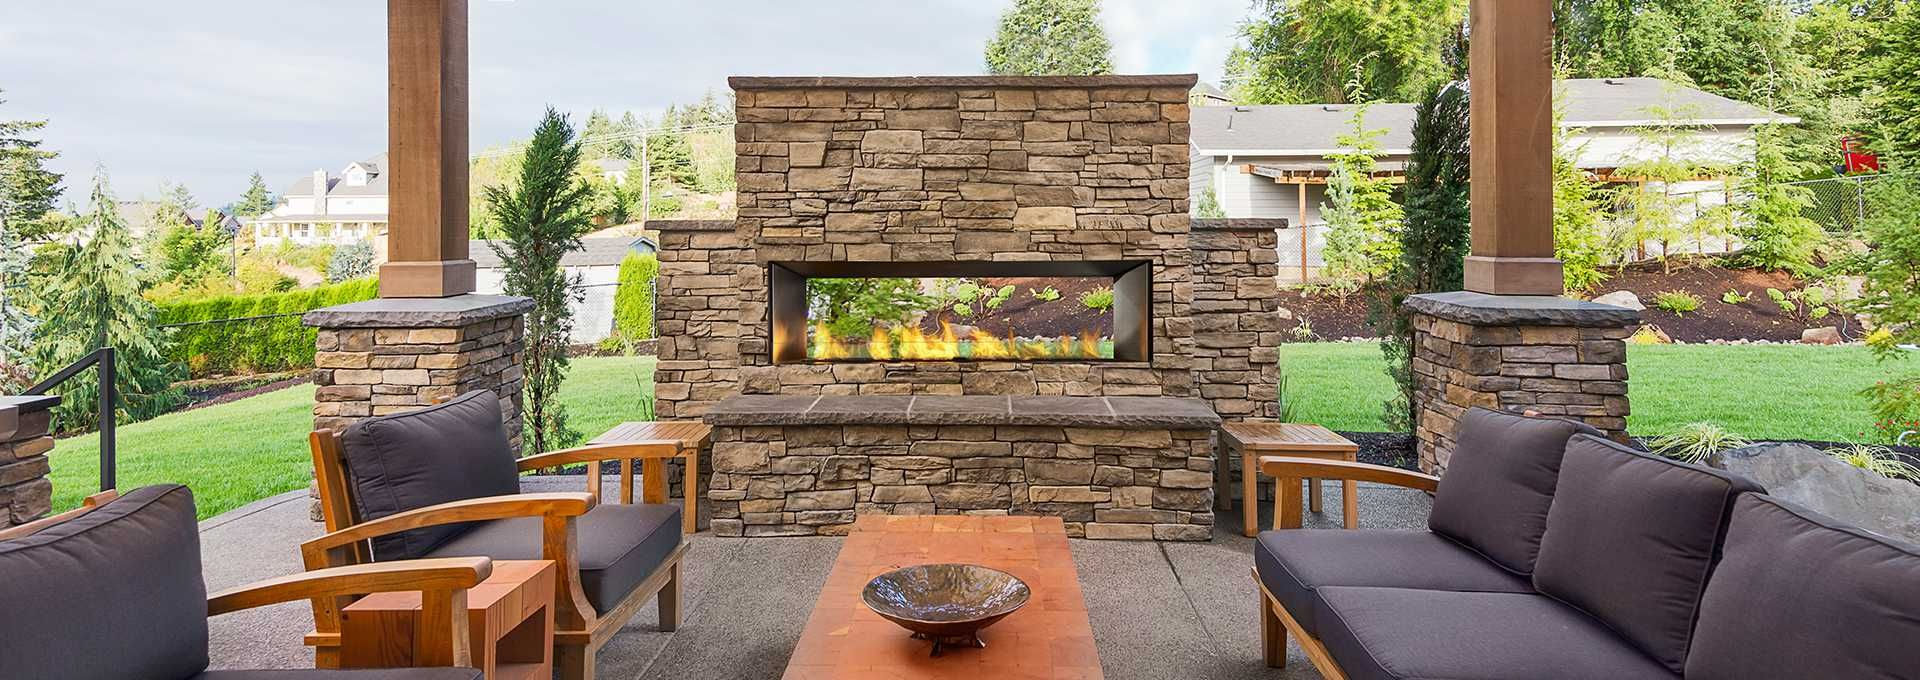 Regency Horizon Hzo60 Outdoor Gas Fireplace With Images